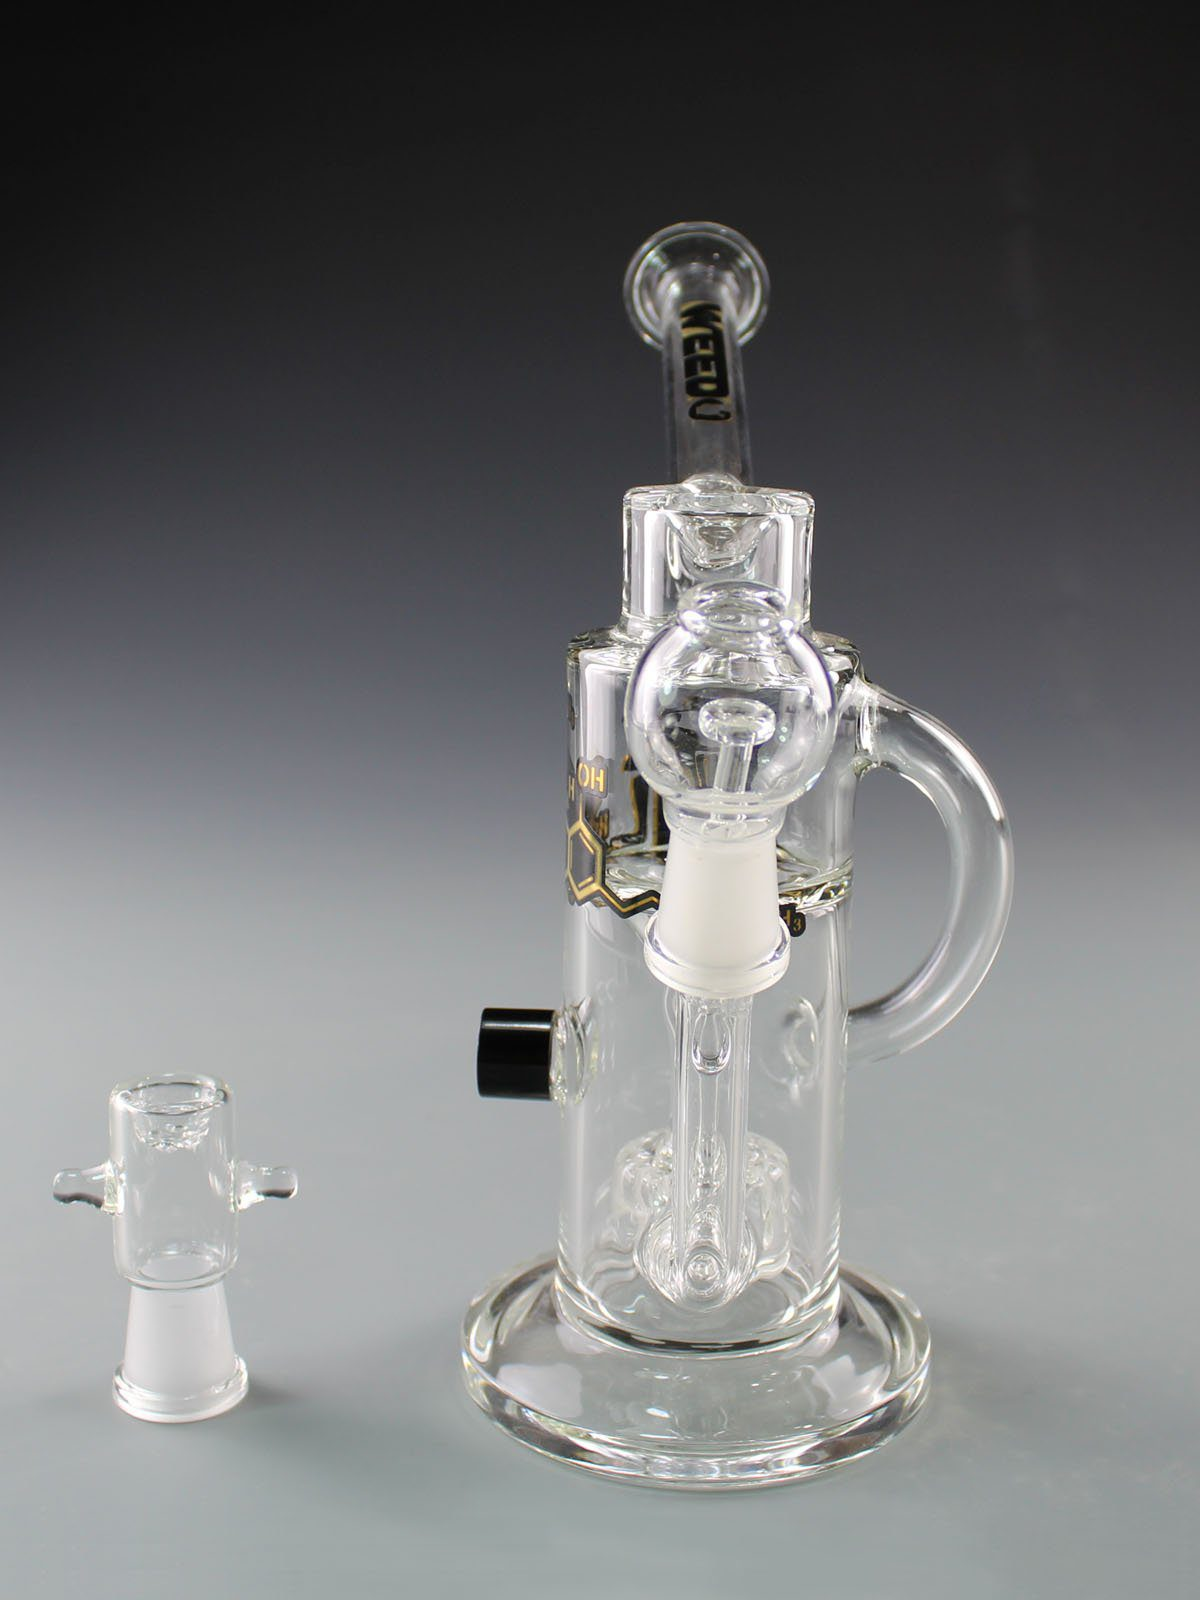 WEEDO THC Recycler with Percs (free stickers)